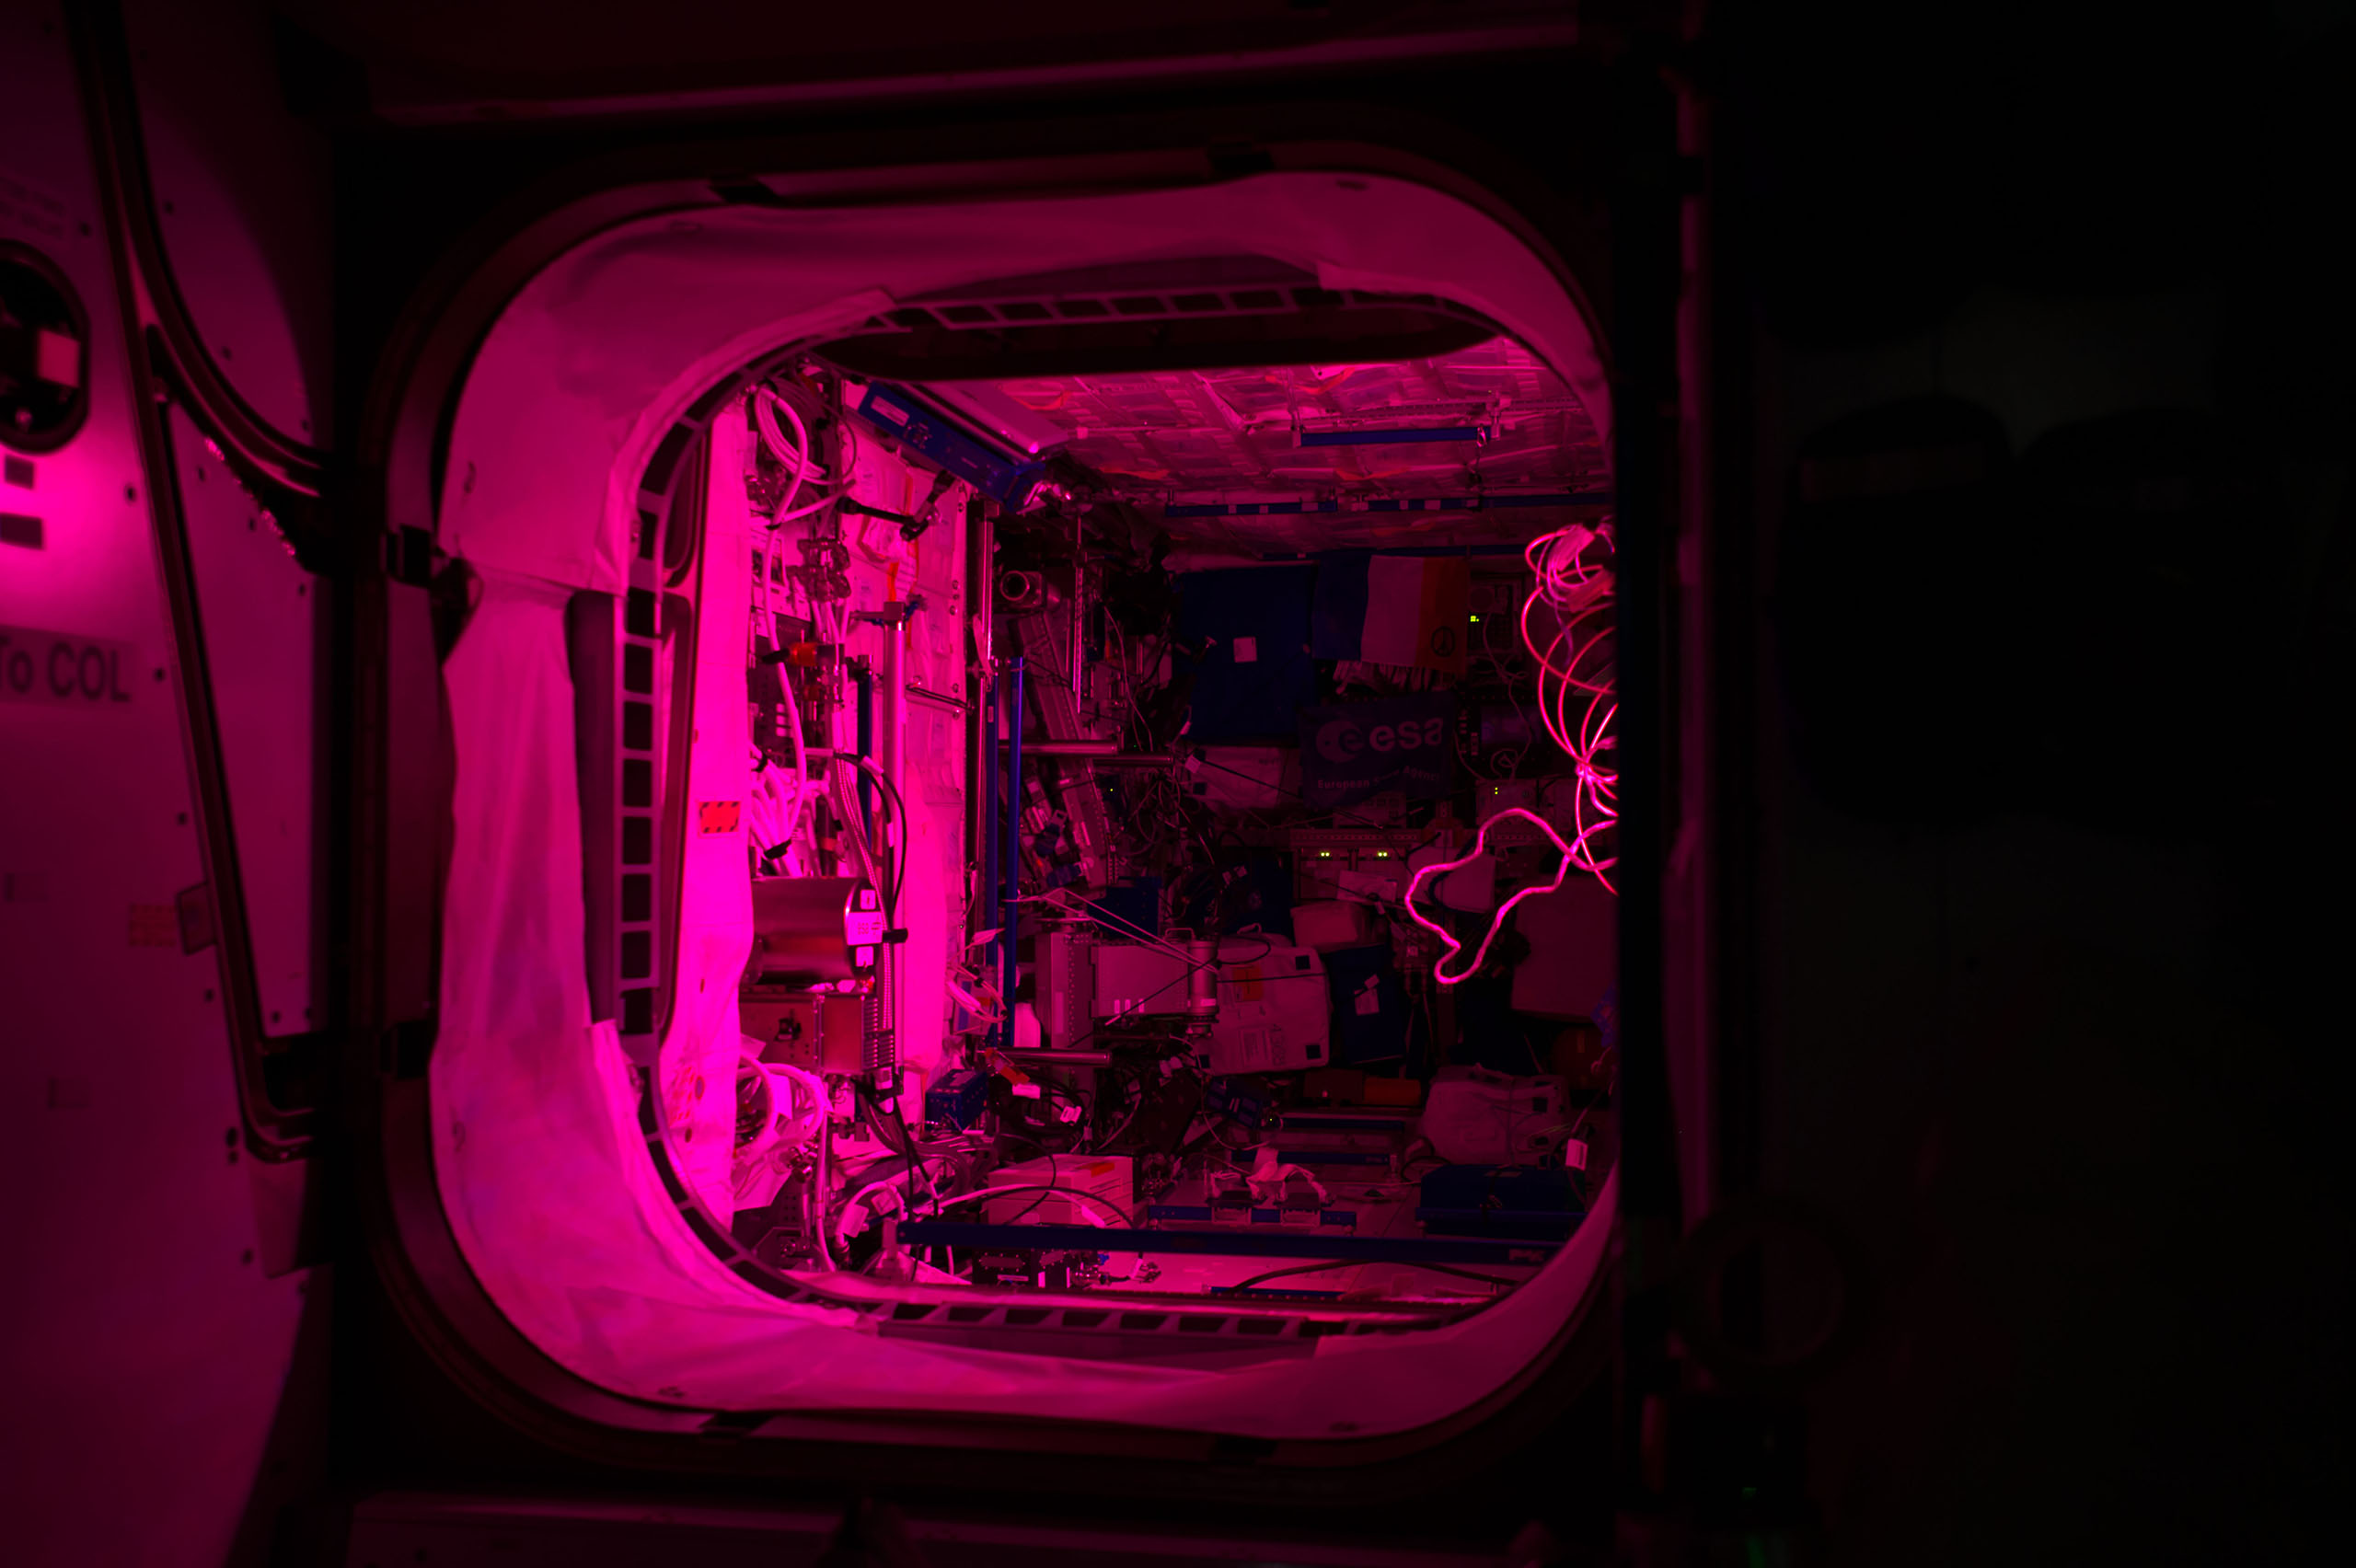 Pink light from the Veggie experiment illuminates the Columbus module aboard the International Space Station on Dec. 1, 2016.